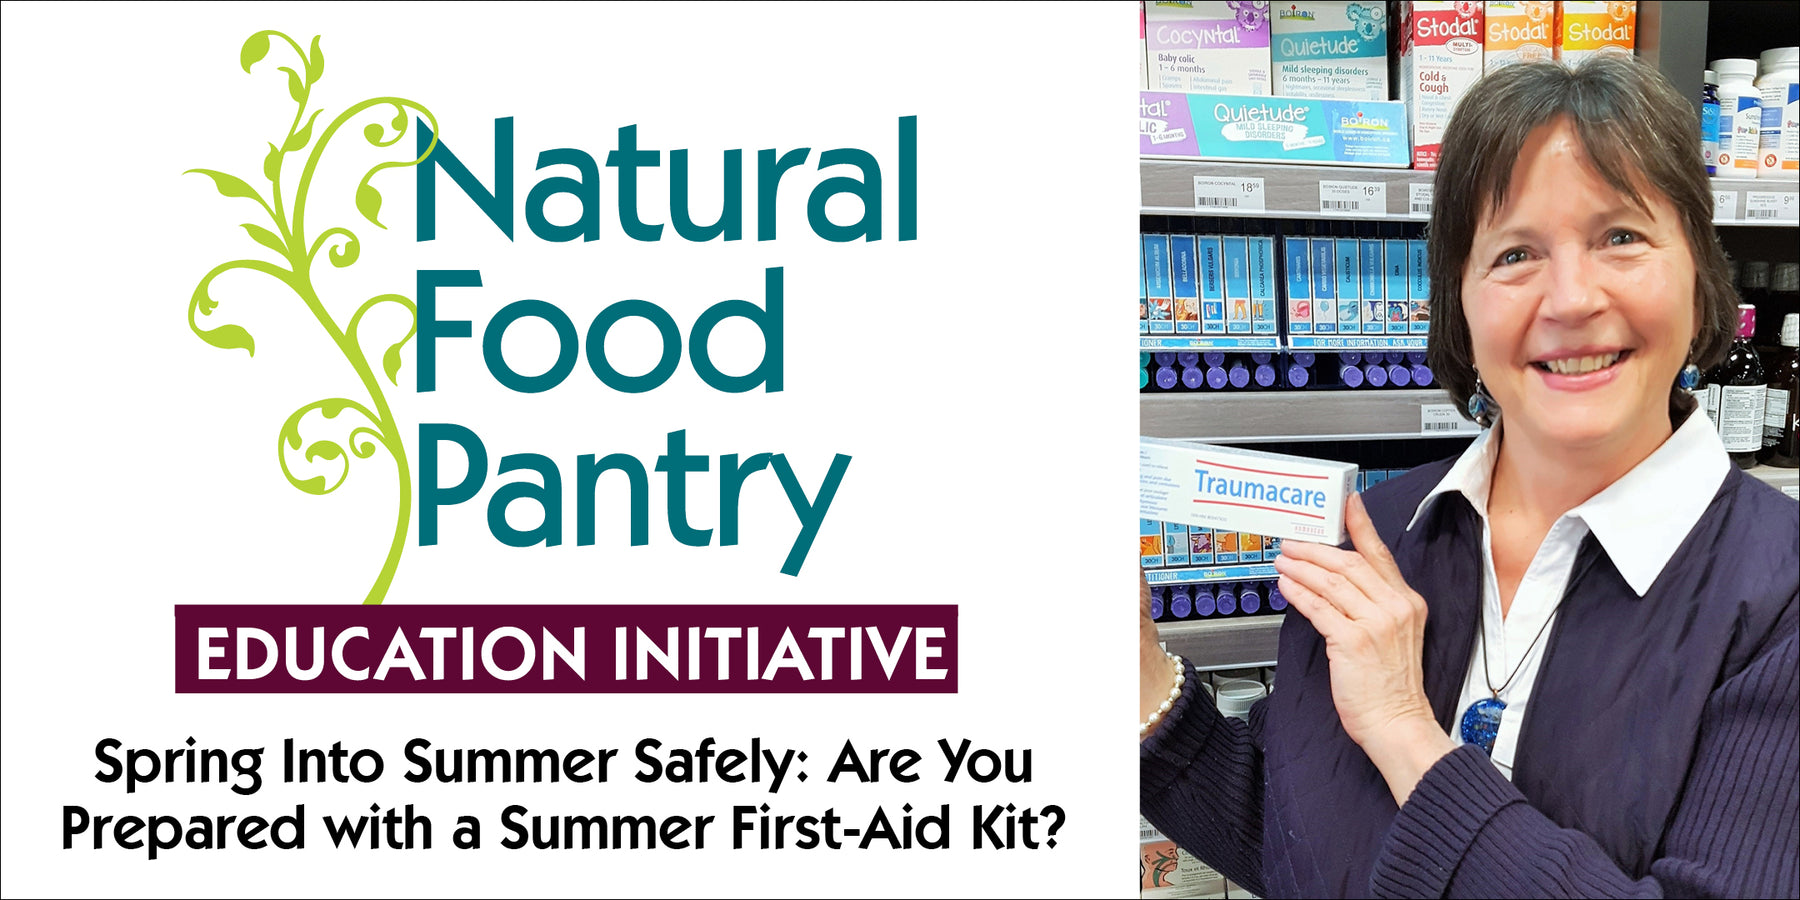 July 11: Spring Into Summer Safely: Are You Prepared with a Summer First-Aid Kit?